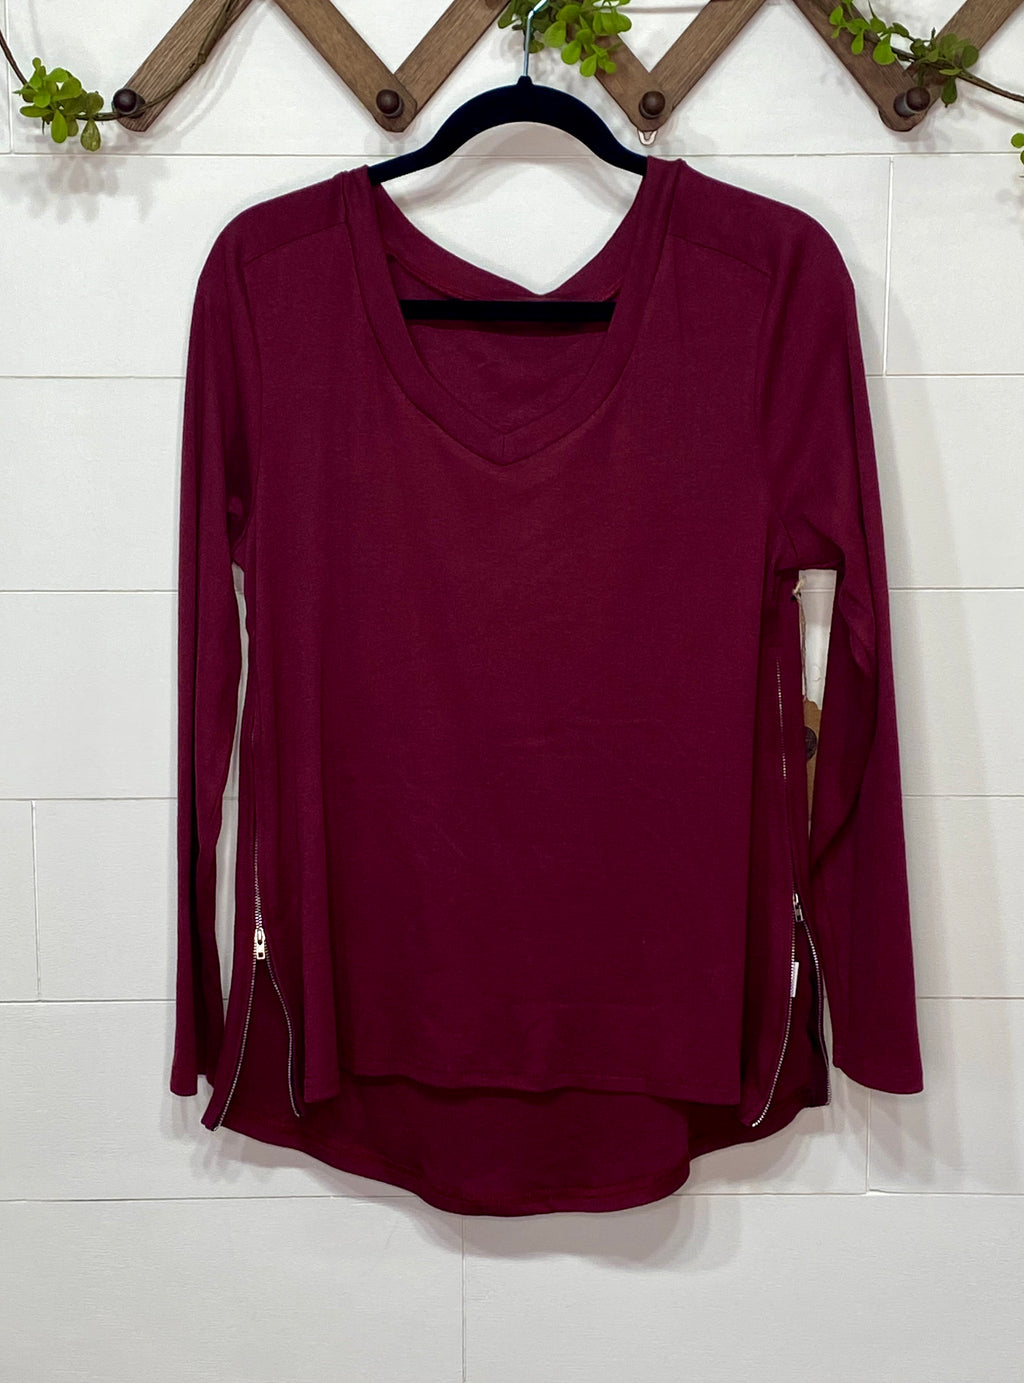 Burgundy Side Zipper Top - Enclothe Boutique